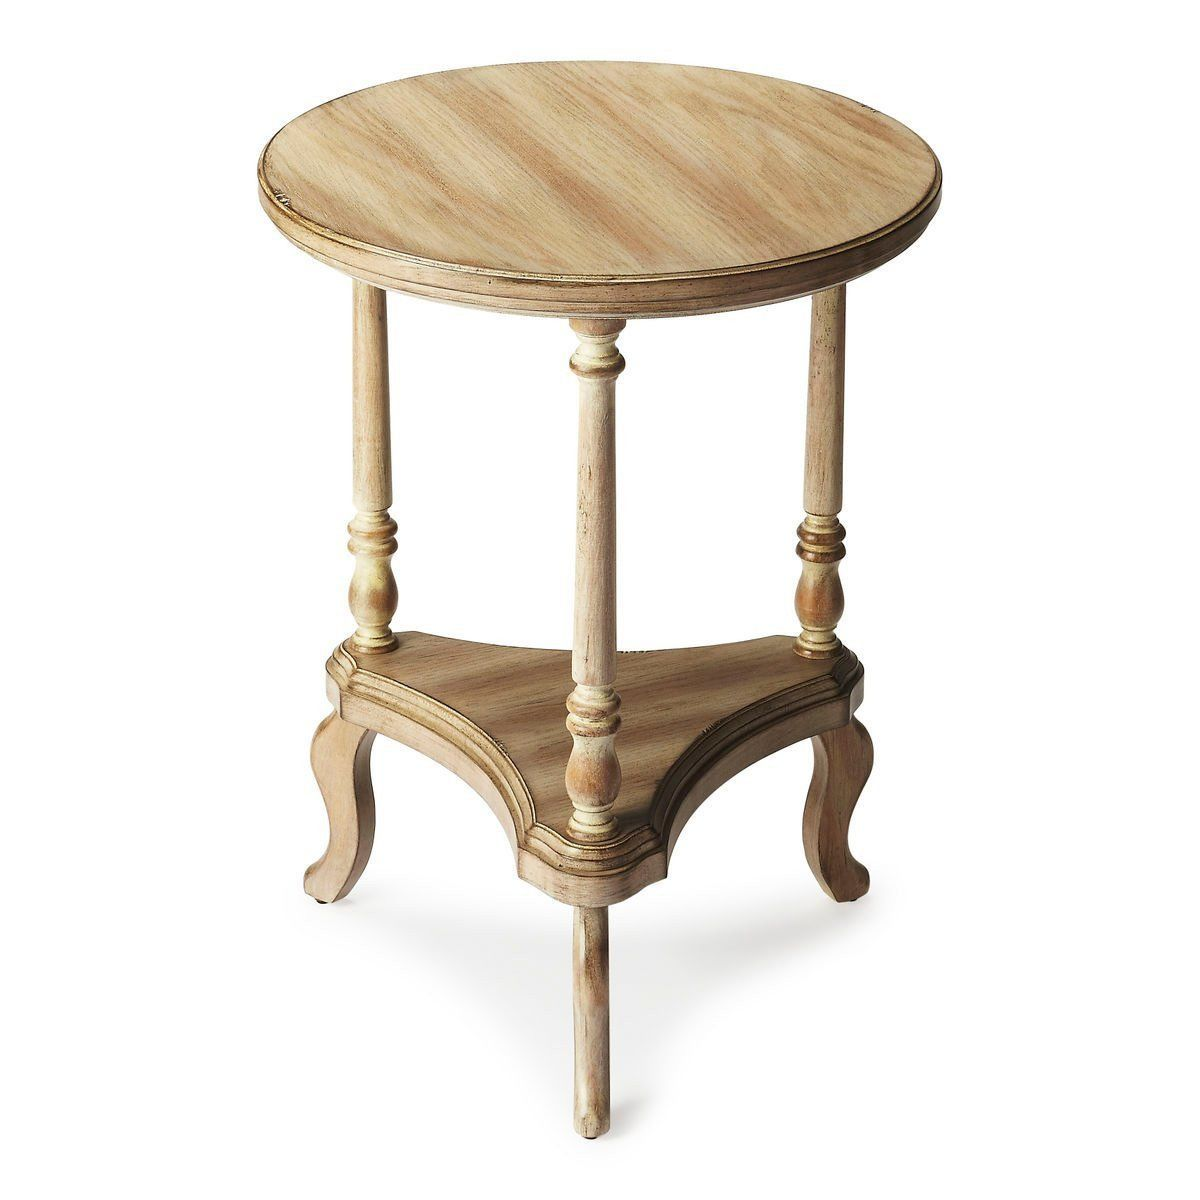 amazing butler furniture but petry transitional side tables round accent table gray wood painted coffee ideas antique marble end red home accessories with screw legs black wine